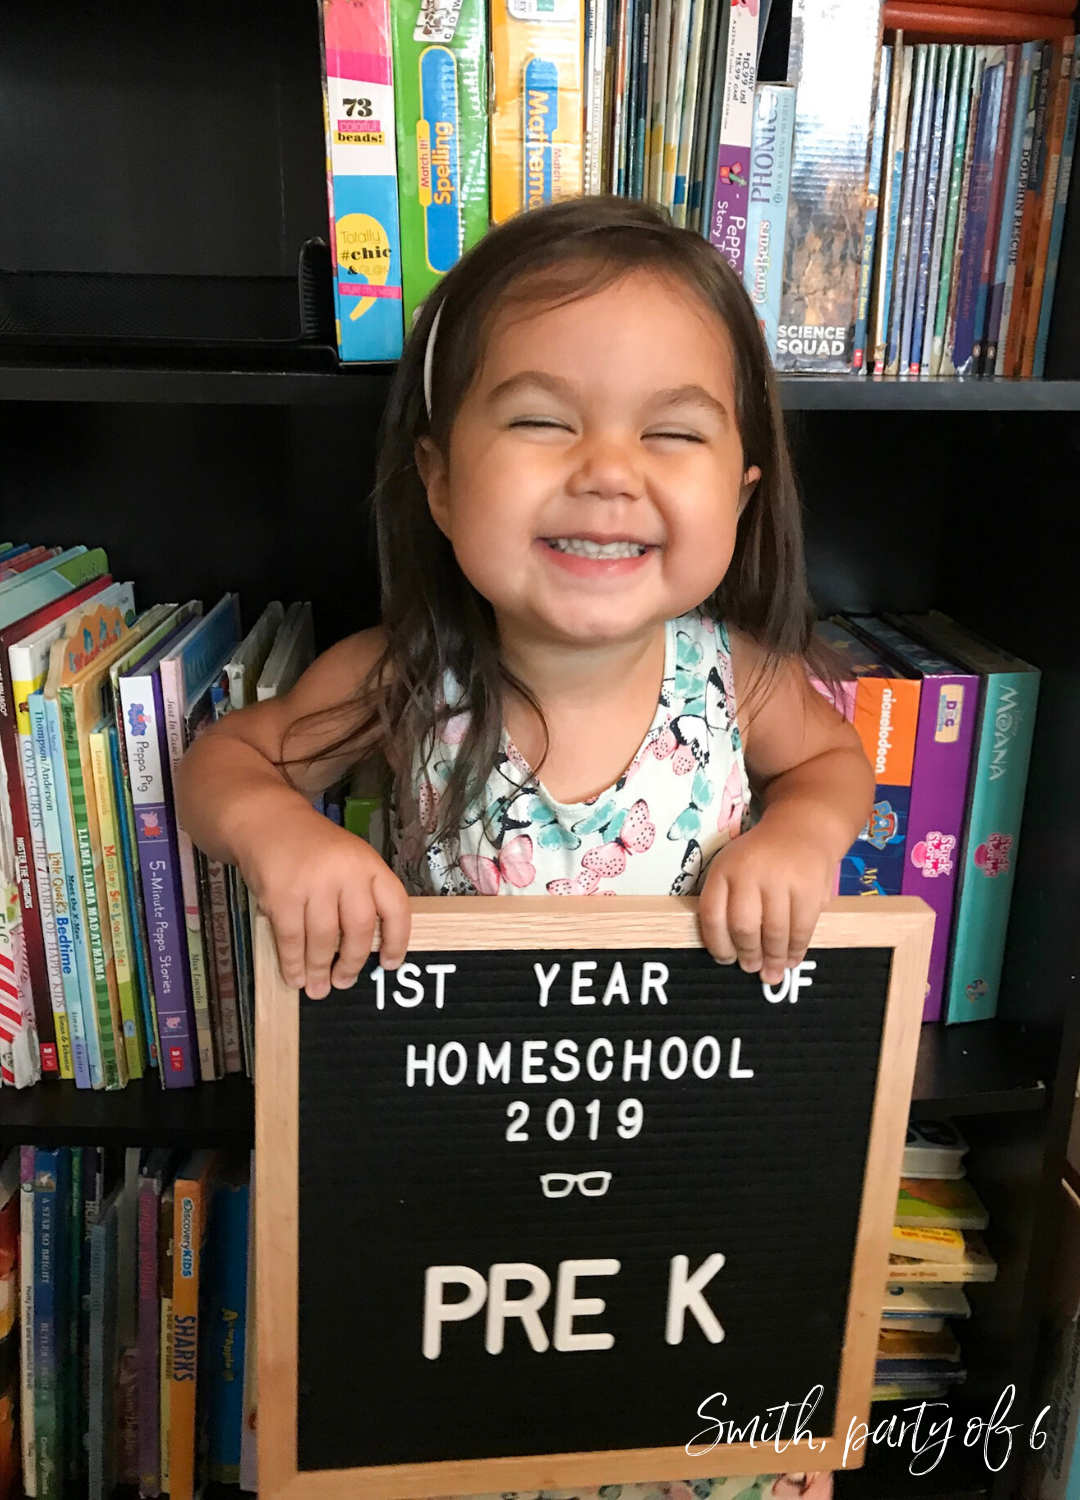 Arwyn's first day of homeschool 2019 | Pre-K